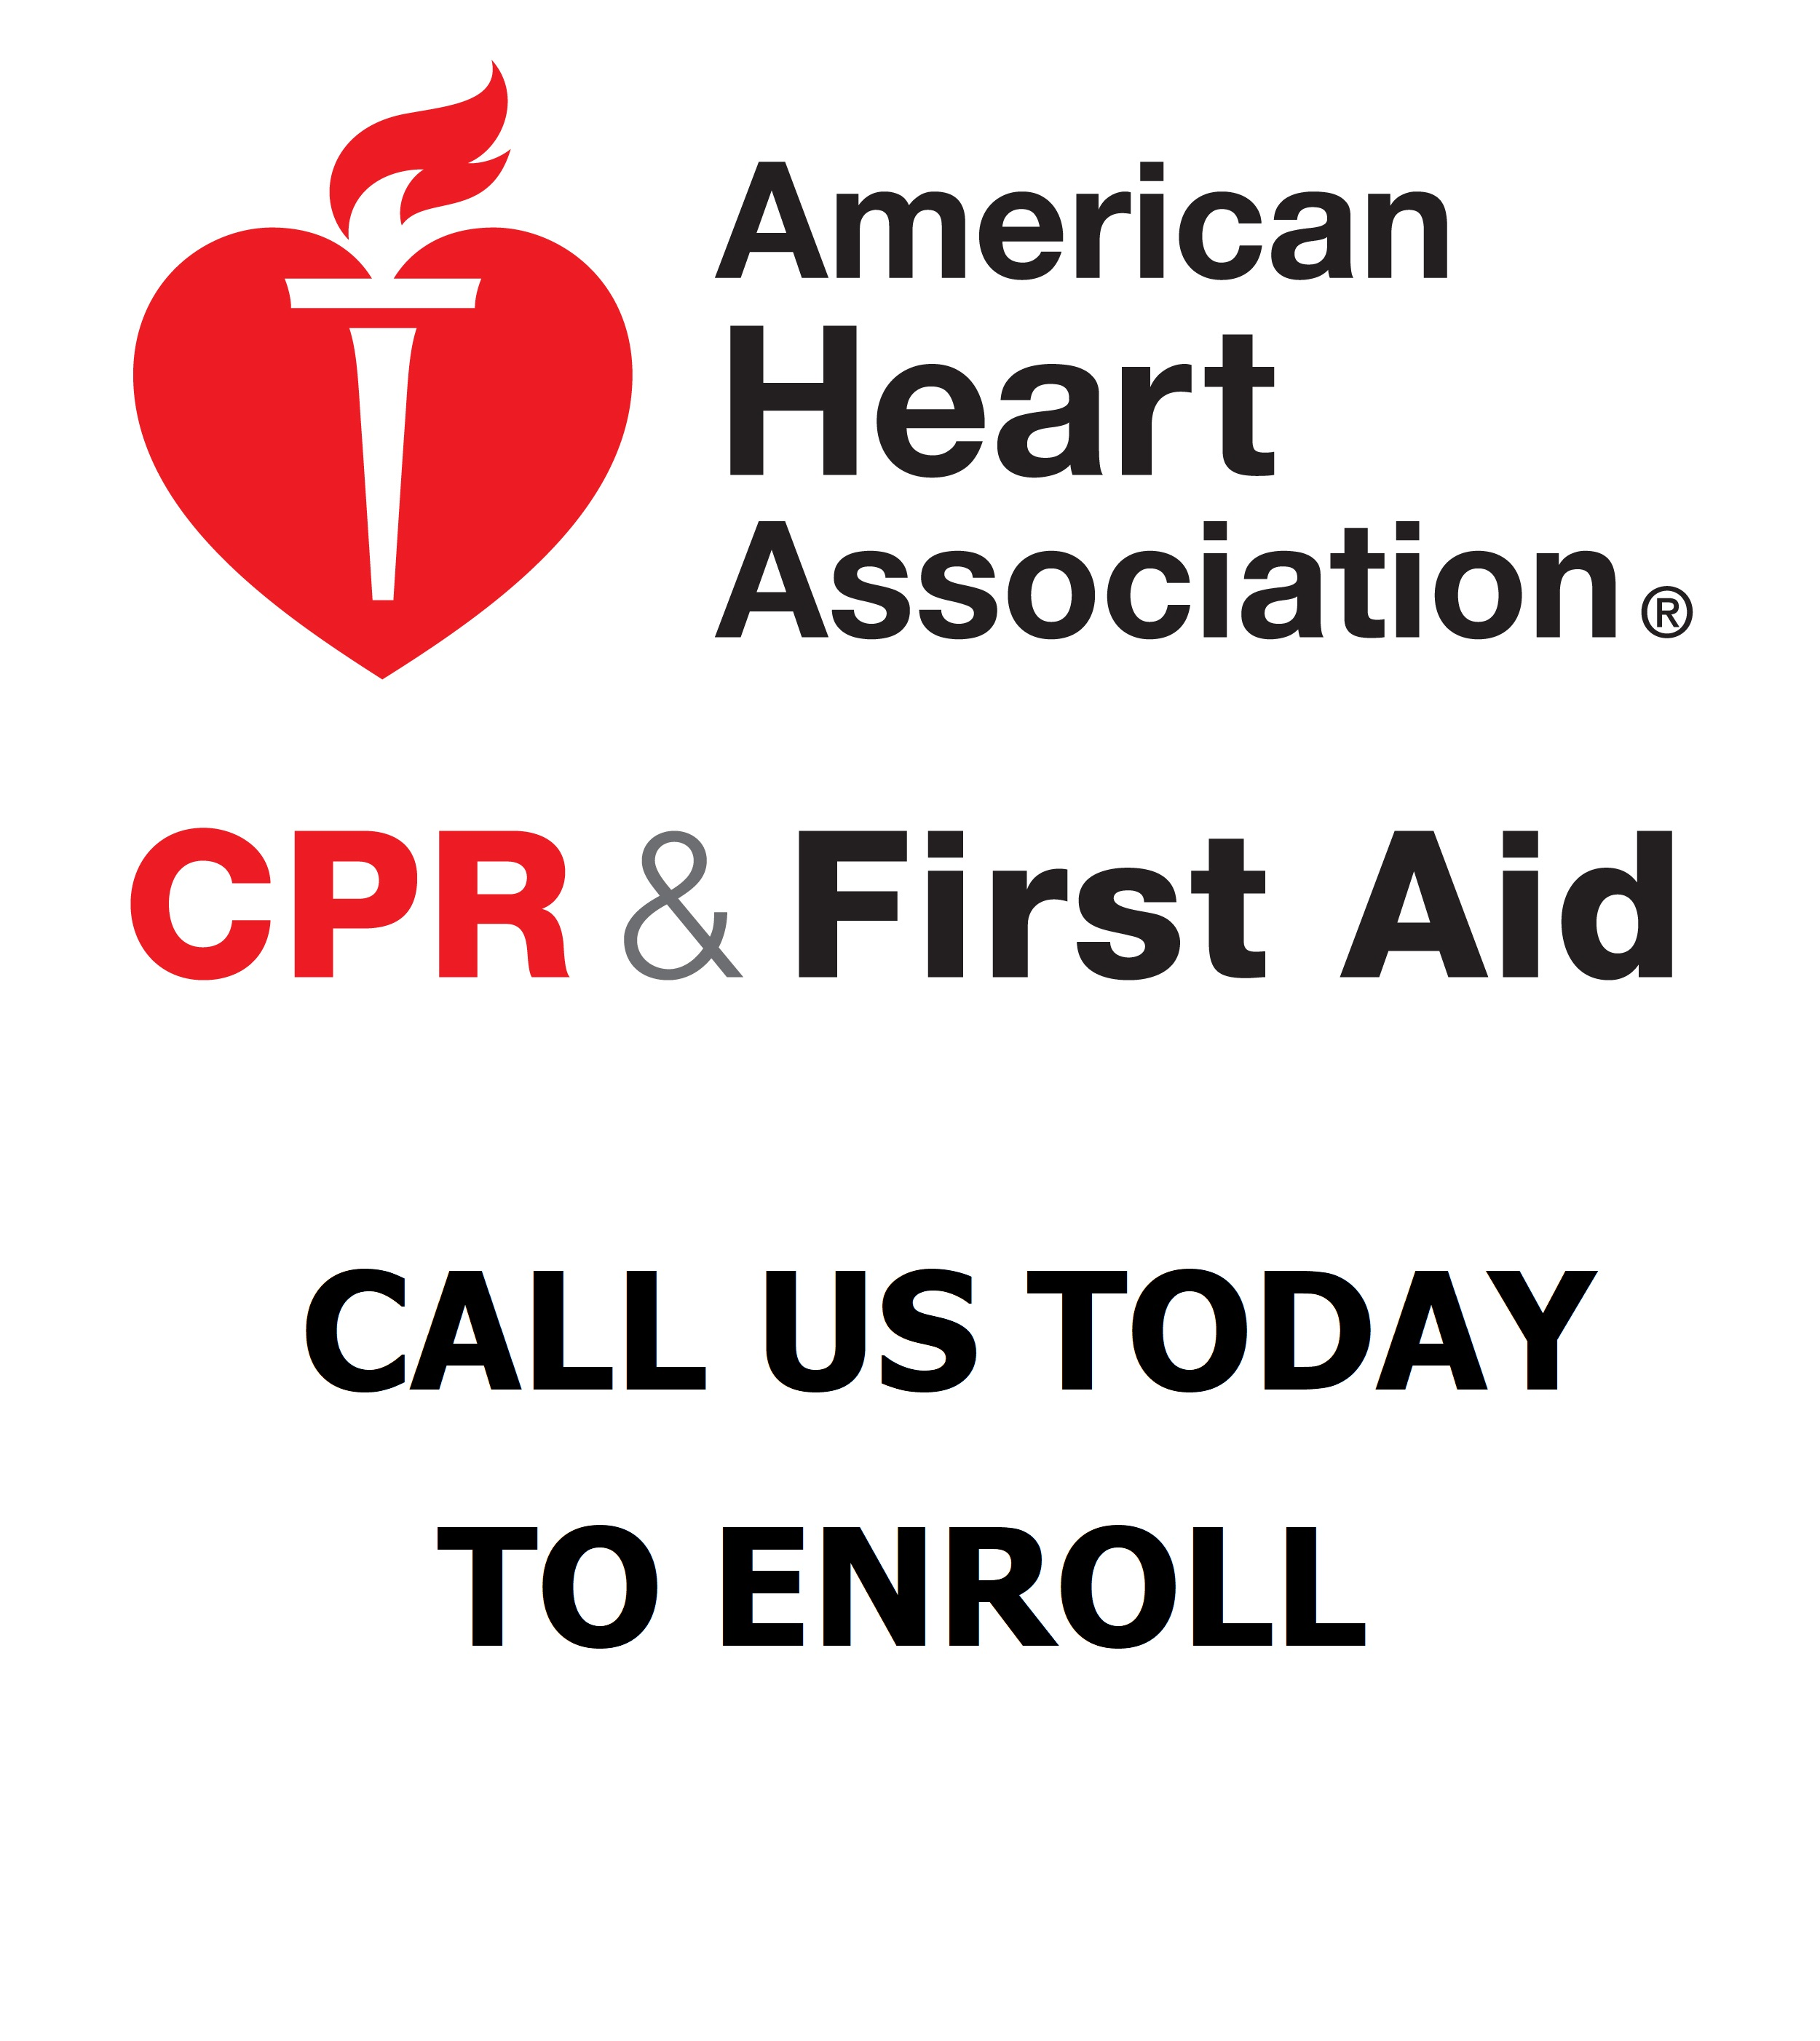 CPR/AED and First Aid Training